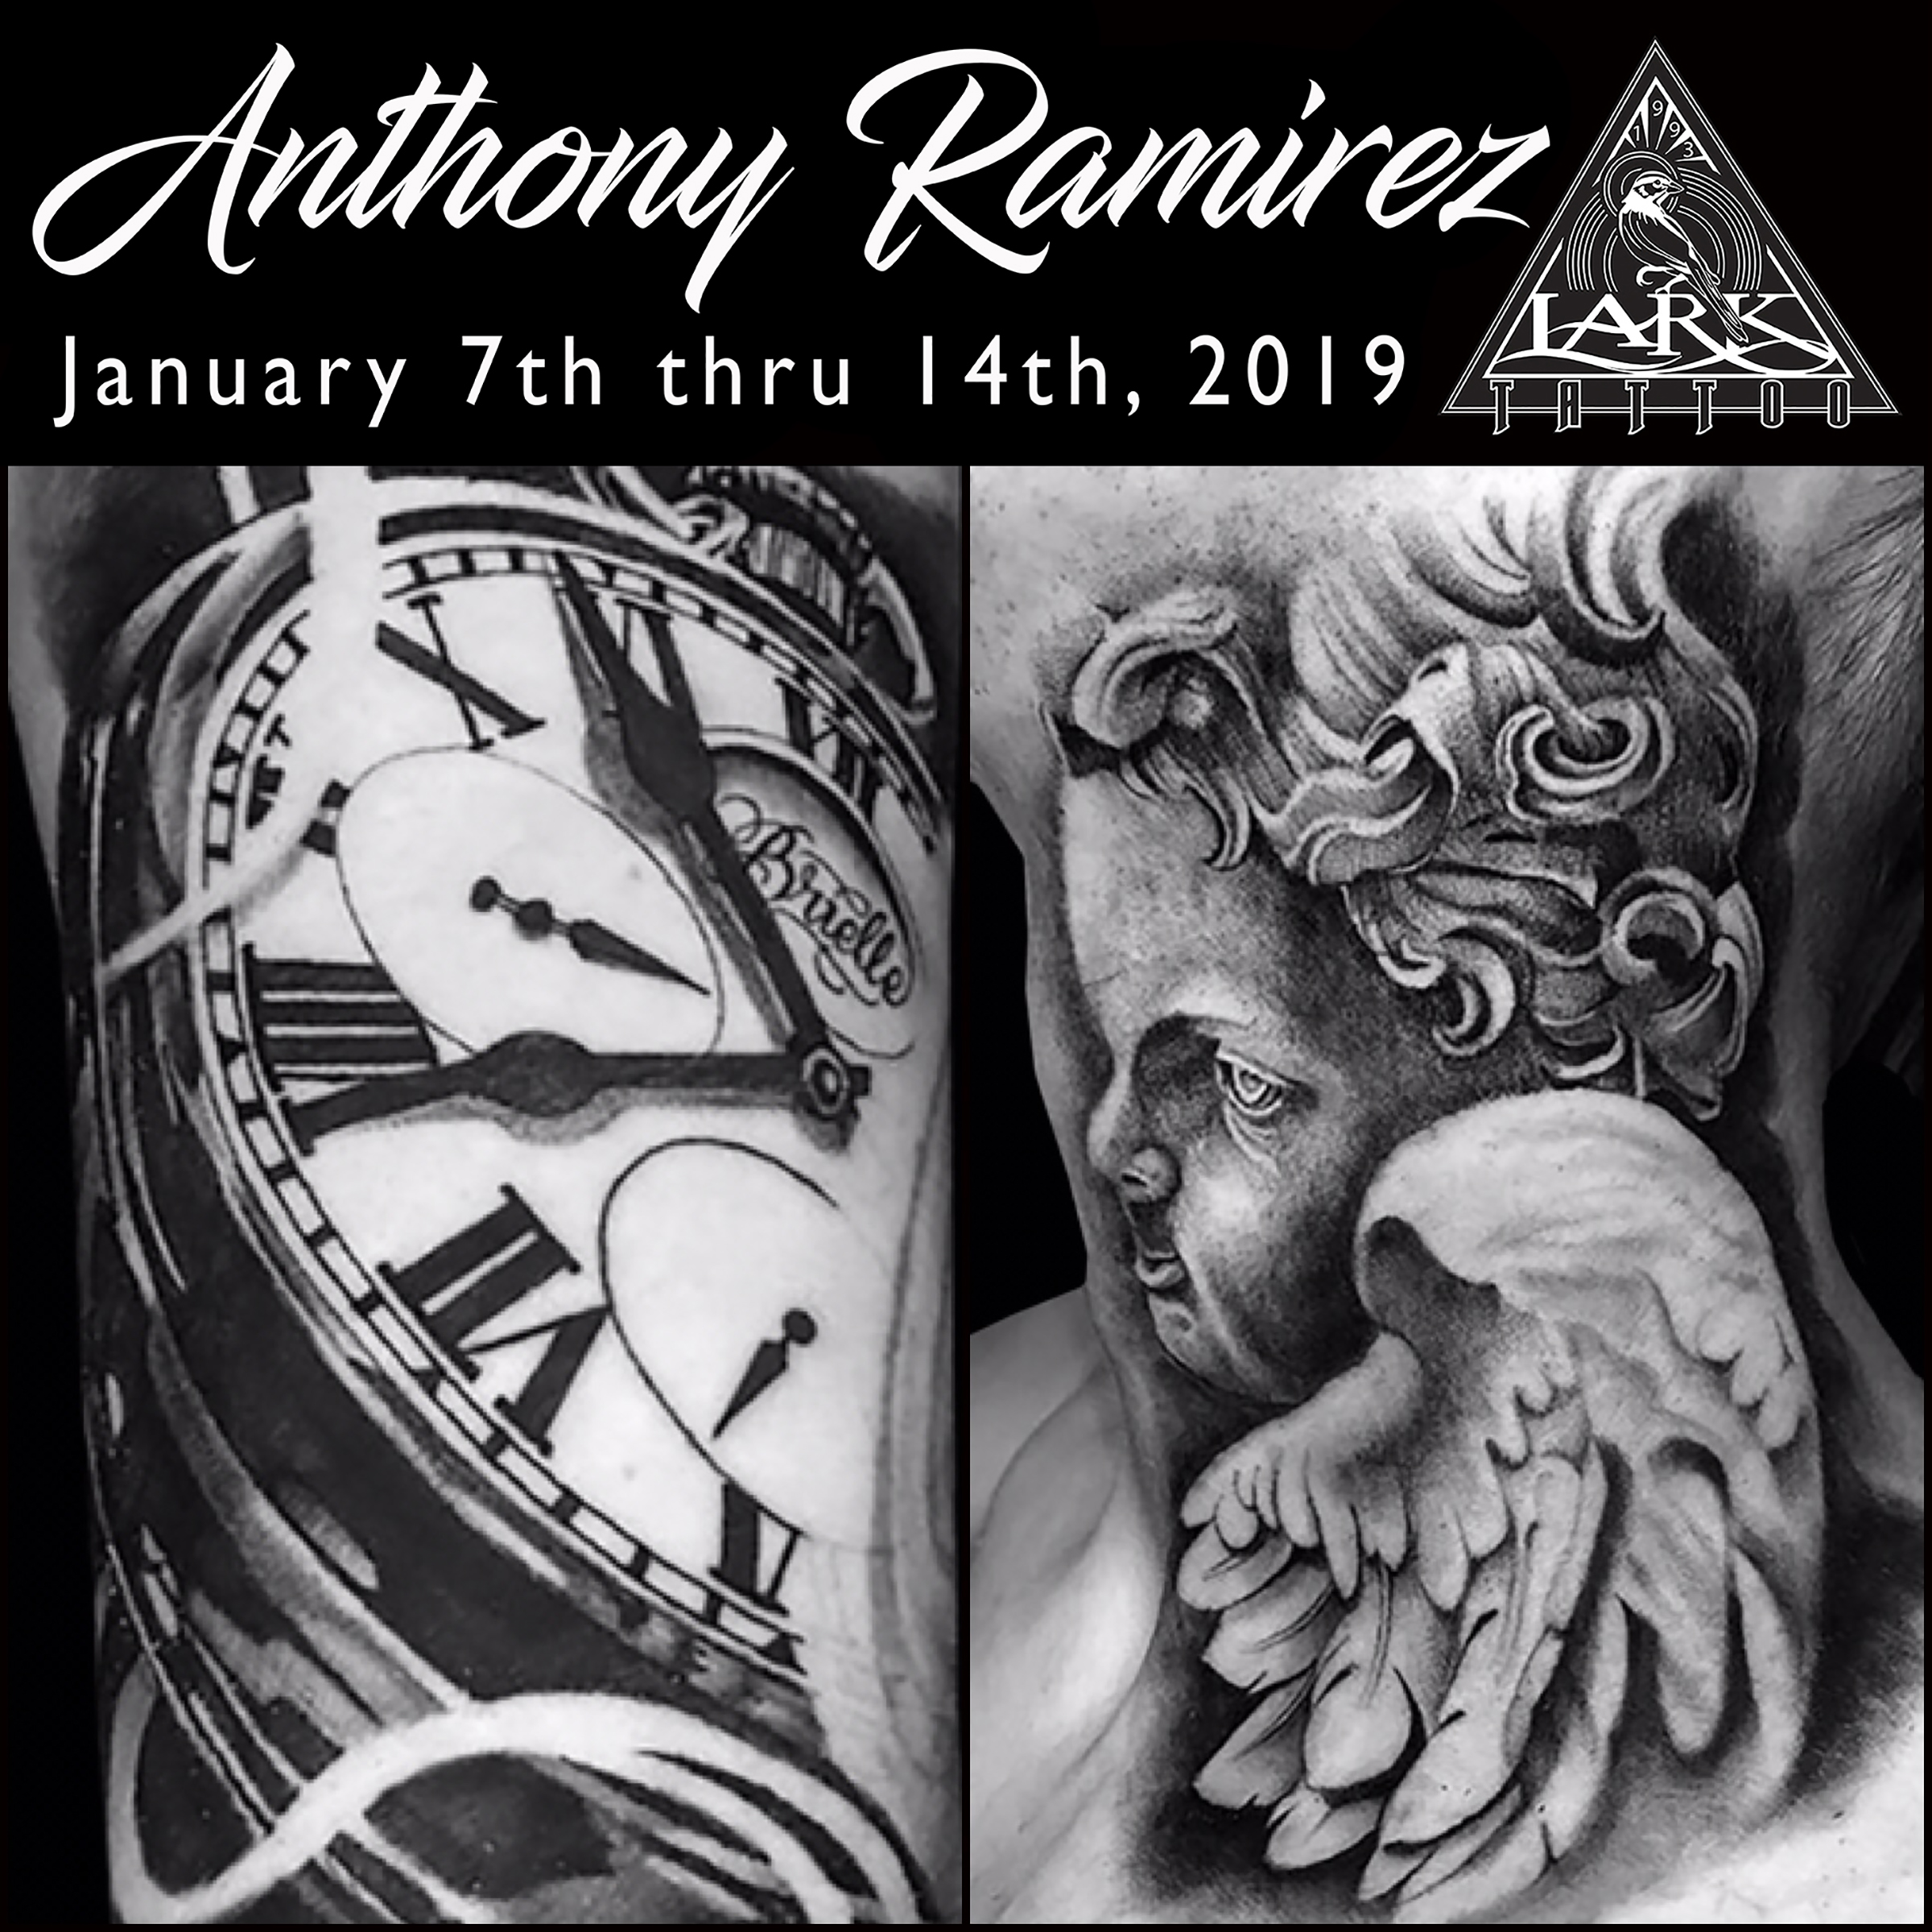 #bng #bngtattoo #blackandgraytattoo #blackandgreytattoo #realismtattoo #pocketwatchtattoo #angeltattoo #watchtattoo #tattoo #tattoos #tat #tats #tatts #tatted #tattedup #tattoist #tattooed #inked #inkedup #ink #tattoooftheday #amazingink #bodyart #newyork #westbury #longisland  #larktattoo